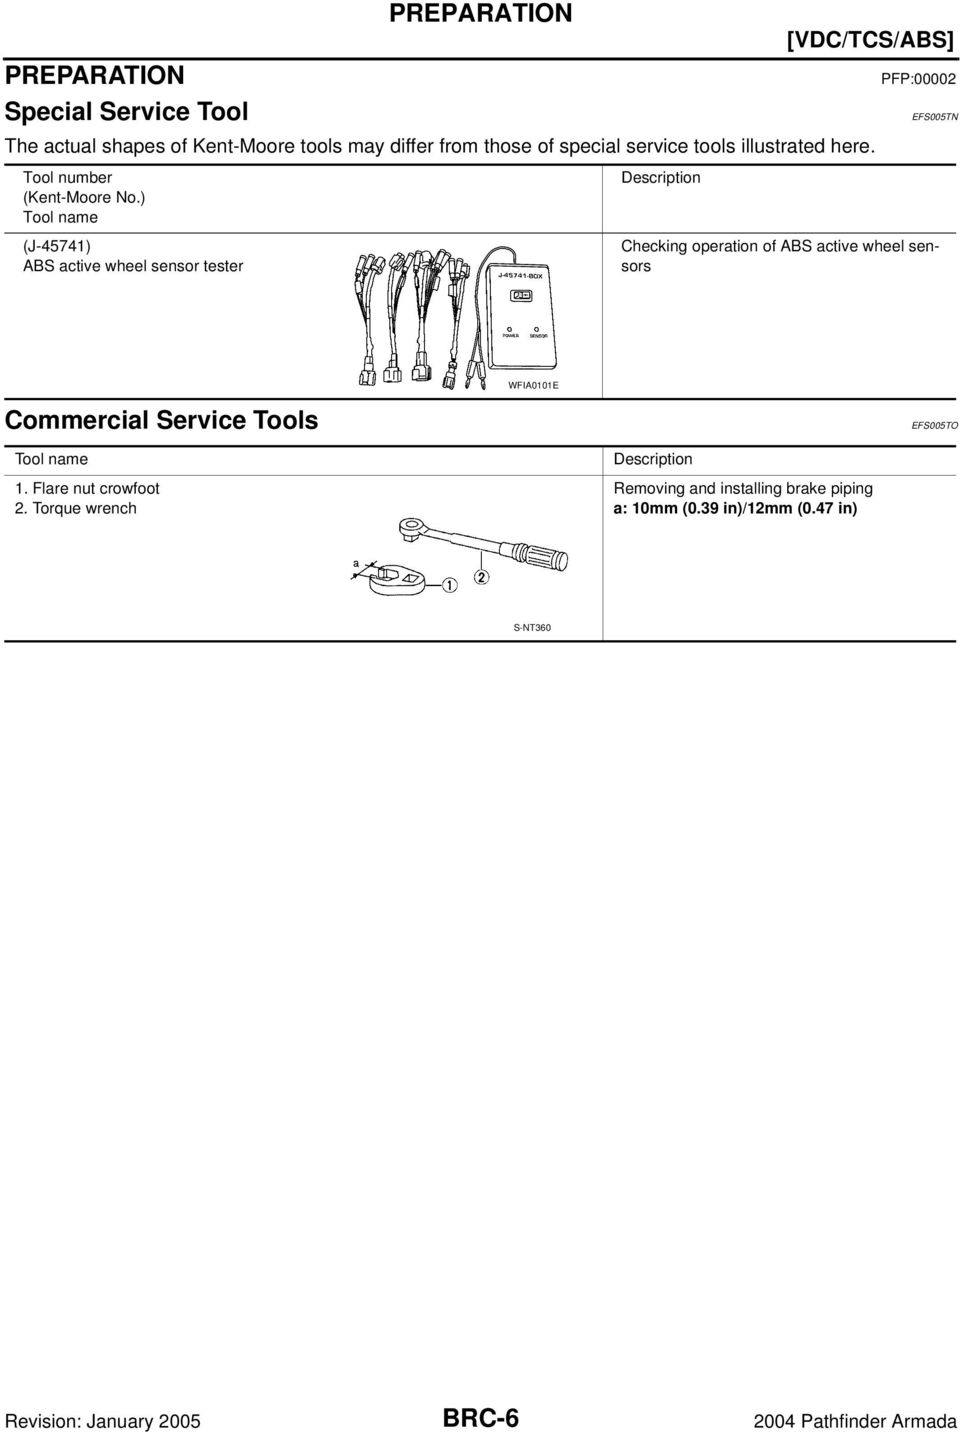 BRAKE CONTROL SYSTEM SECTION CONTENTS F BRAKES BRC-1 VDC/TCS